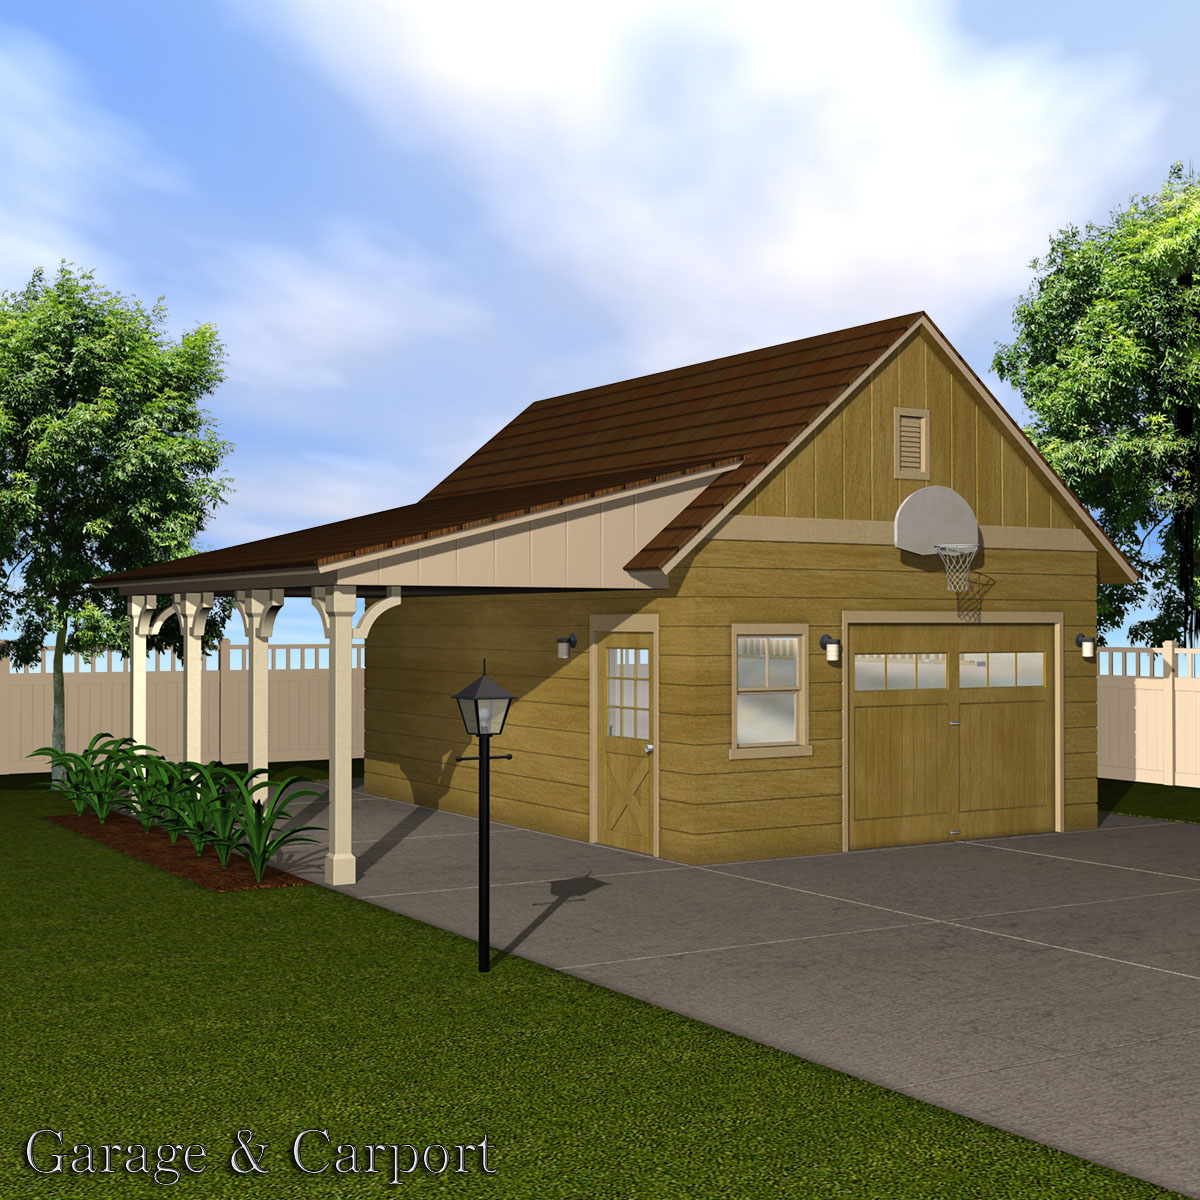 Garage carport set 3d models richabri for Carport ou garage